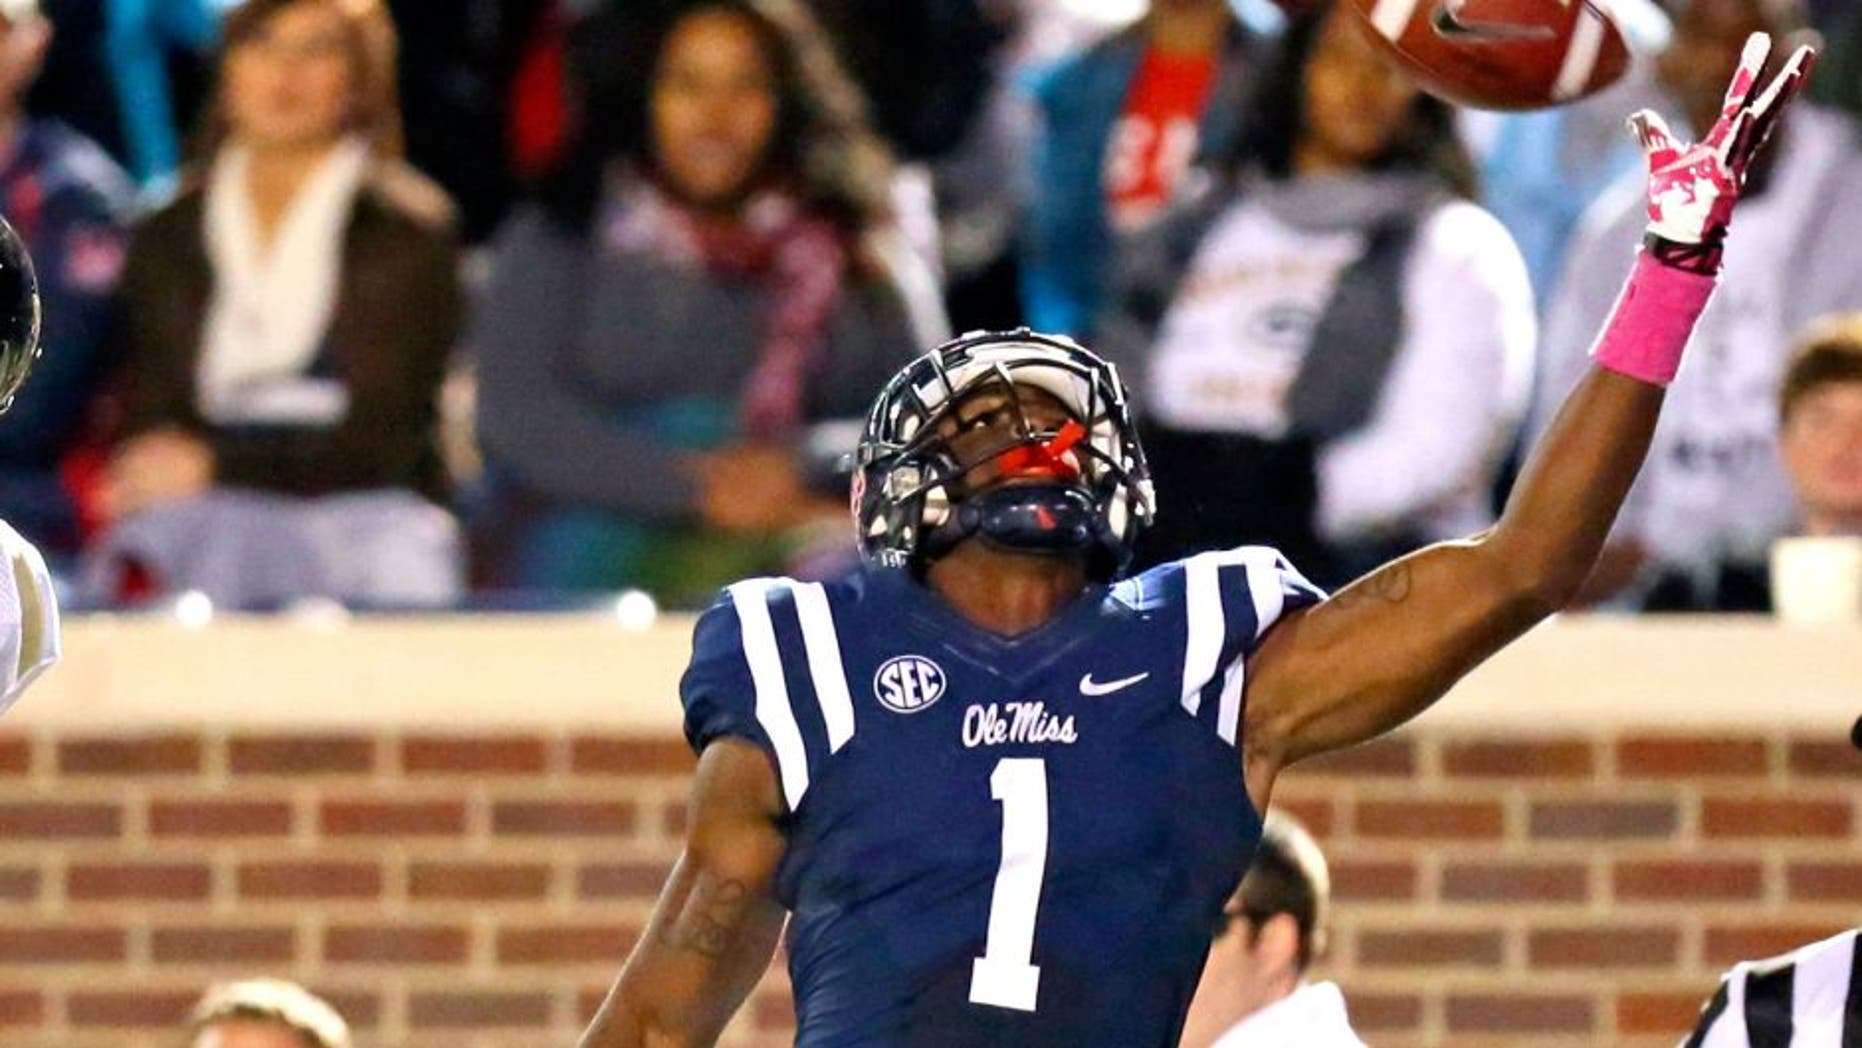 Oct 26, 2013; Oxford, MS, USA; Mississippi Rebels wide receiver Laquon Treadwell (1) catches the ball against the Idaho Vandalsat Vaught-Hemingway Stadium. Mandatory Credit: Spruce Derden-USA TODAY Sports